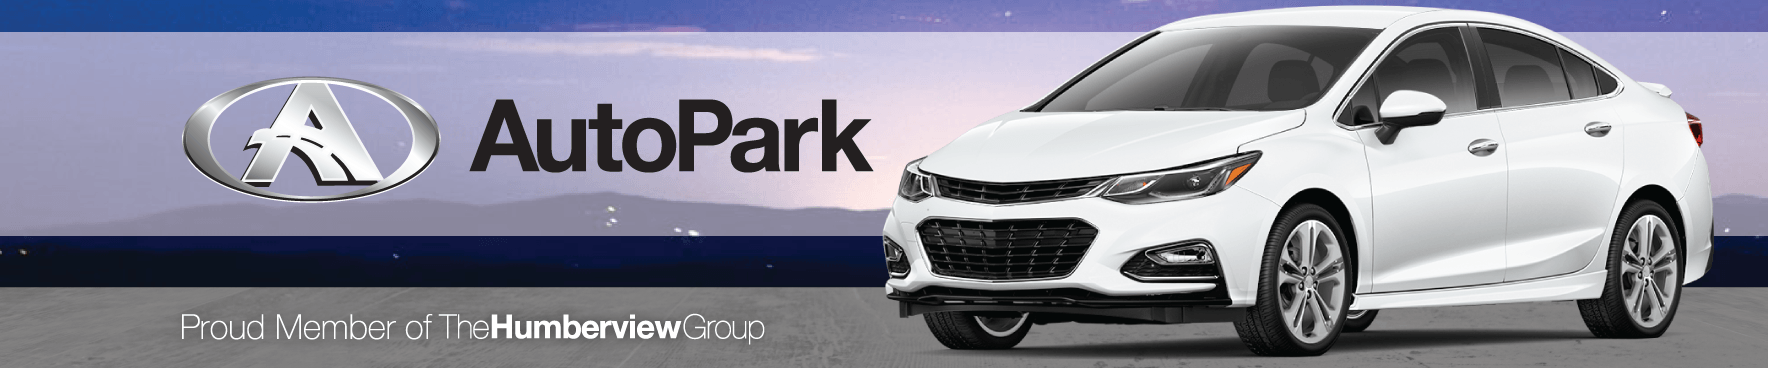 AutoPark Barrie - Largest Used Car Network in Ontario